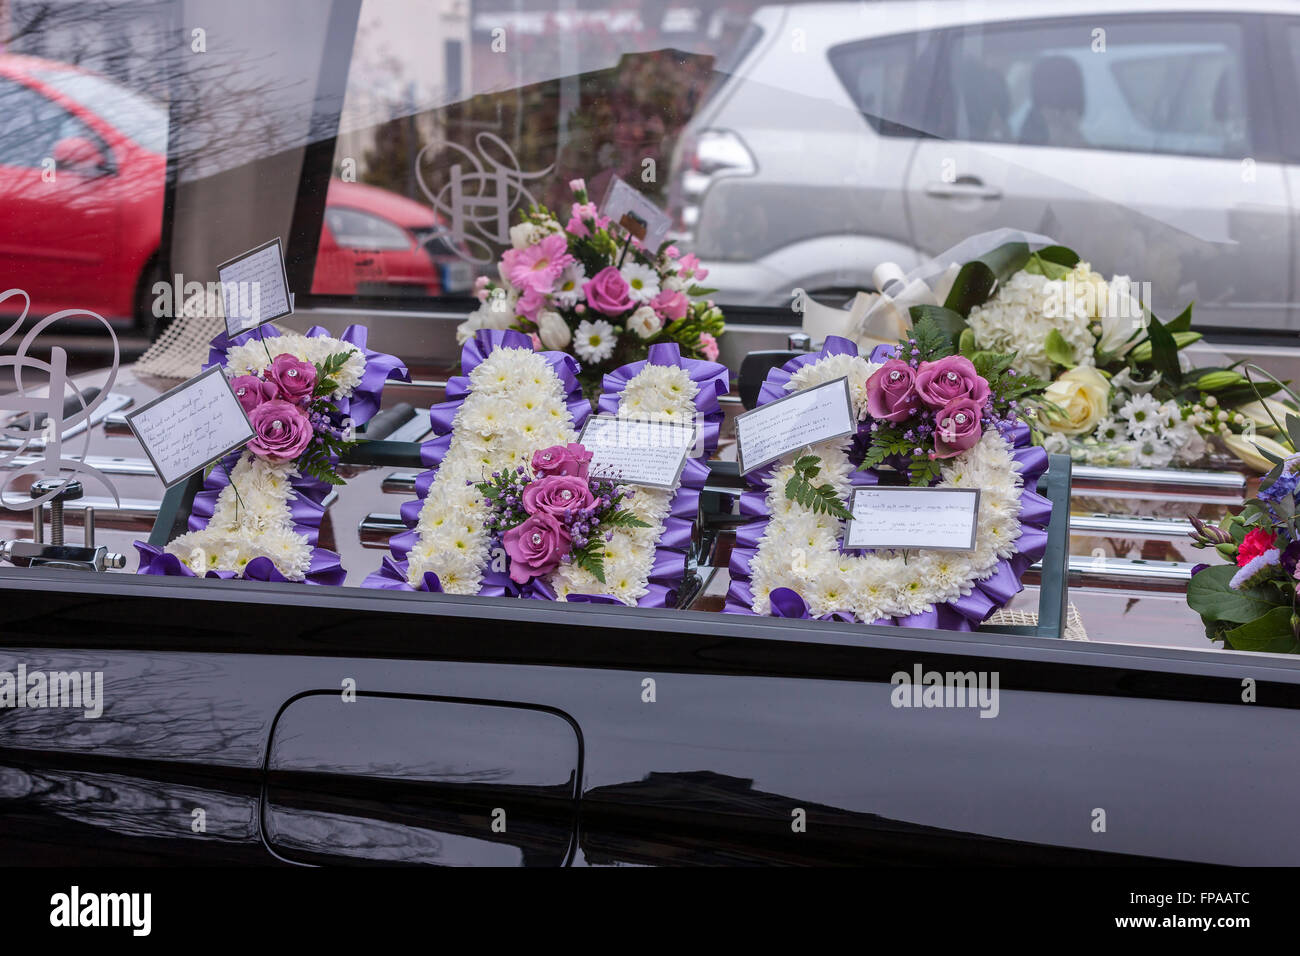 Northampton uk 18th march 2016 park avenue methodist church northampton uk 18th march 2016 park avenue methodist church park ave north family and friends attend a memorial service for india chipchase who was izmirmasajfo